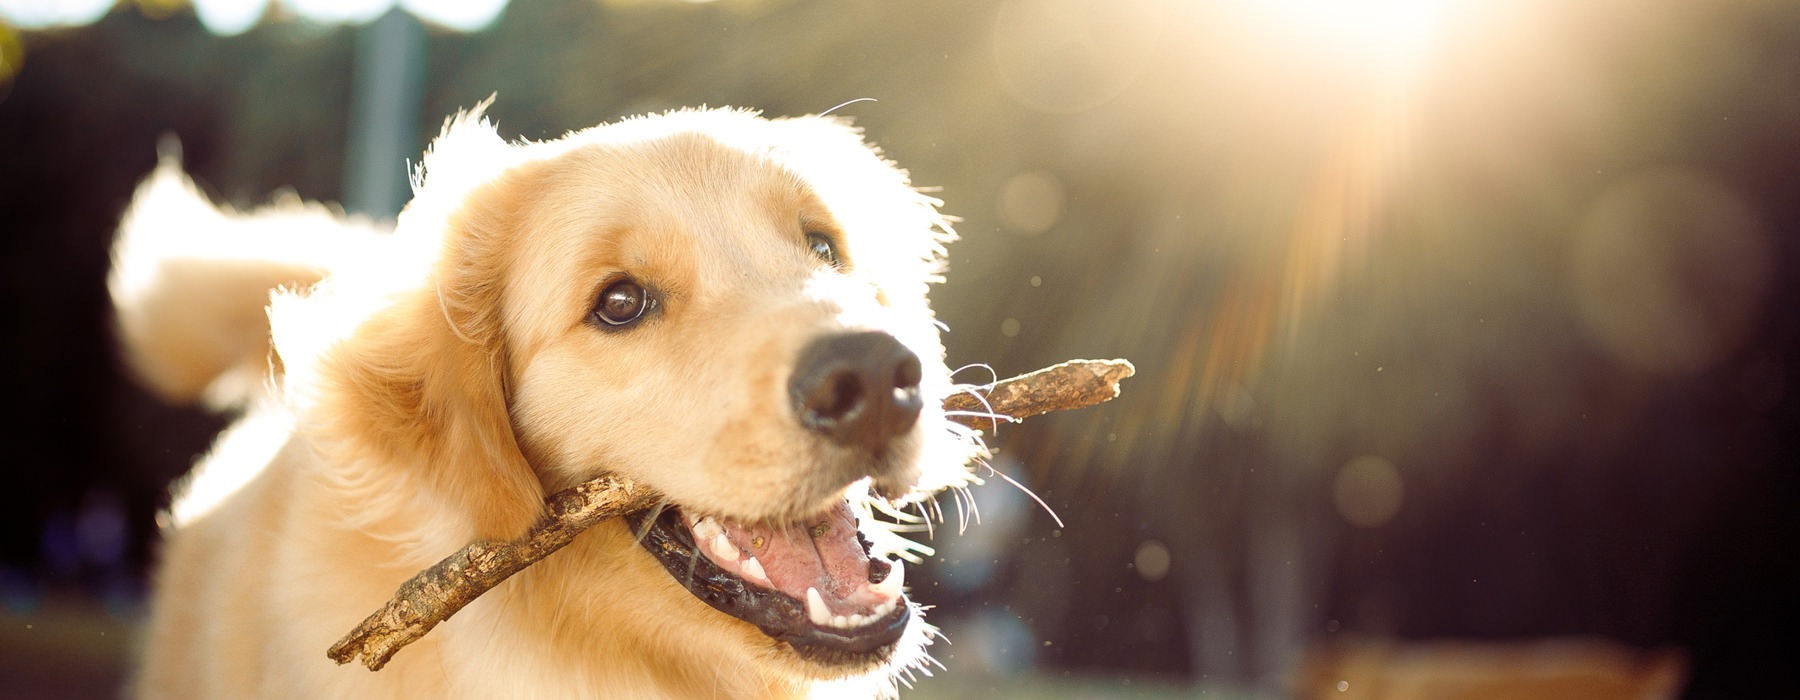 golden retriever with a stick in his mouth